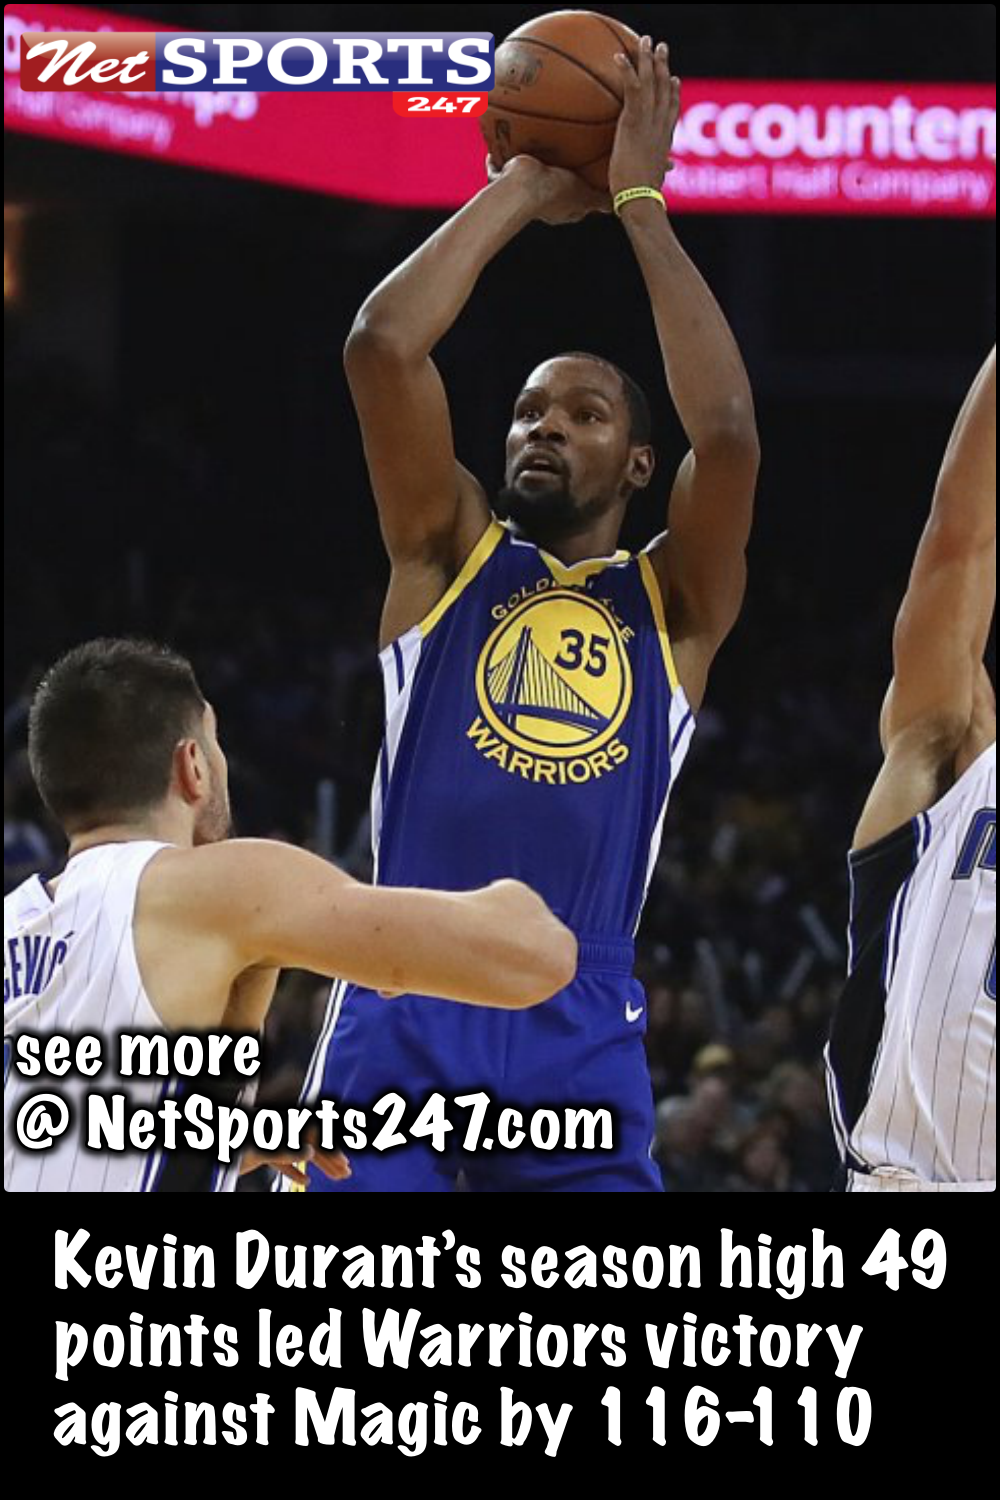 f487857b2ba Kevin Durant s season high 49 points led Warriors victory against Magic by  116-110 - Net sports 247  KevinDurant  season  Warriors  Magic  NBA   NetSports247